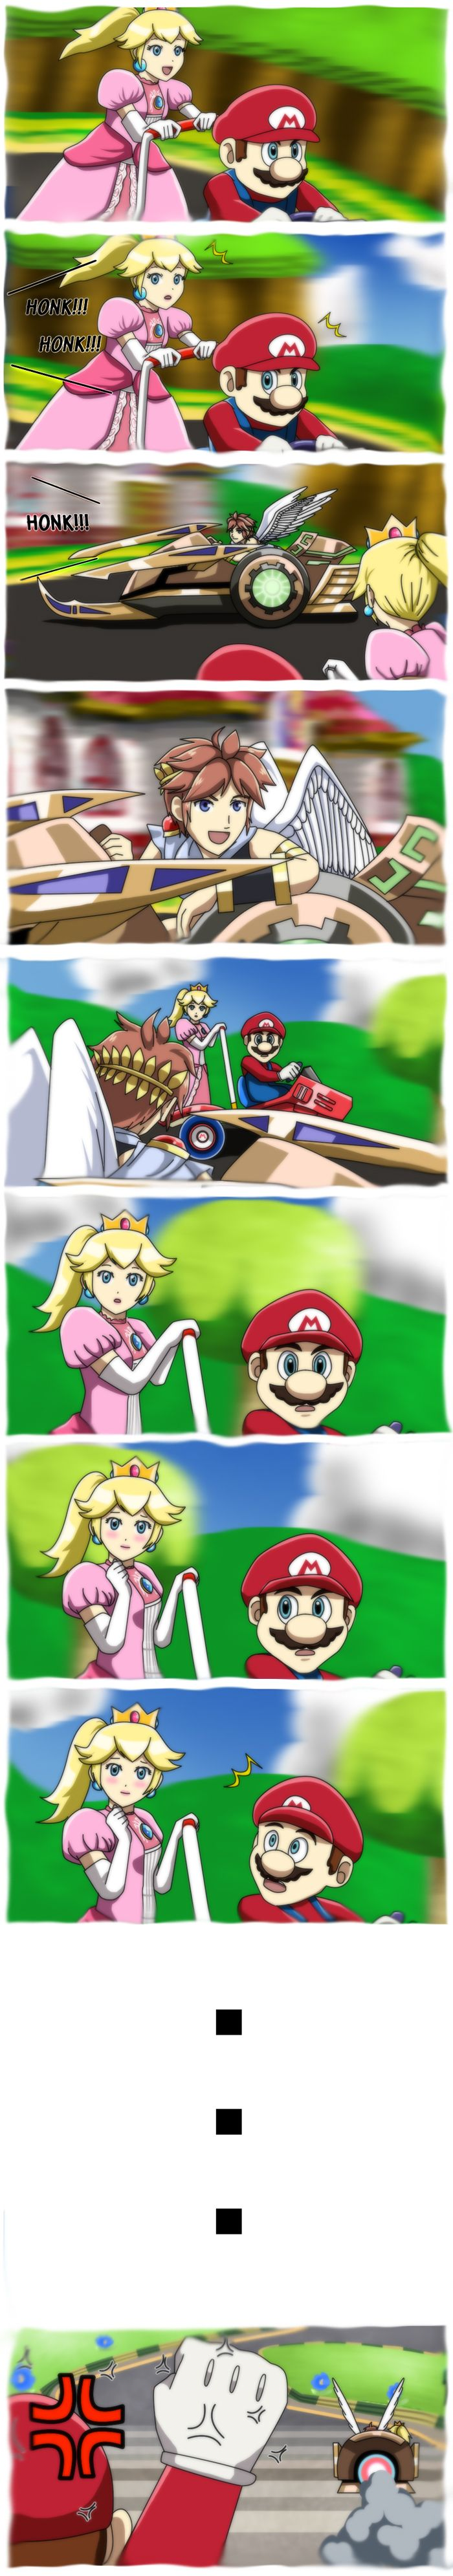 Game Kart Interference by AmazingArtistYellow.deviantart.com on @DeviantArt ........and so, that is the story of how Pit was banned from ALL Mario Kart races.